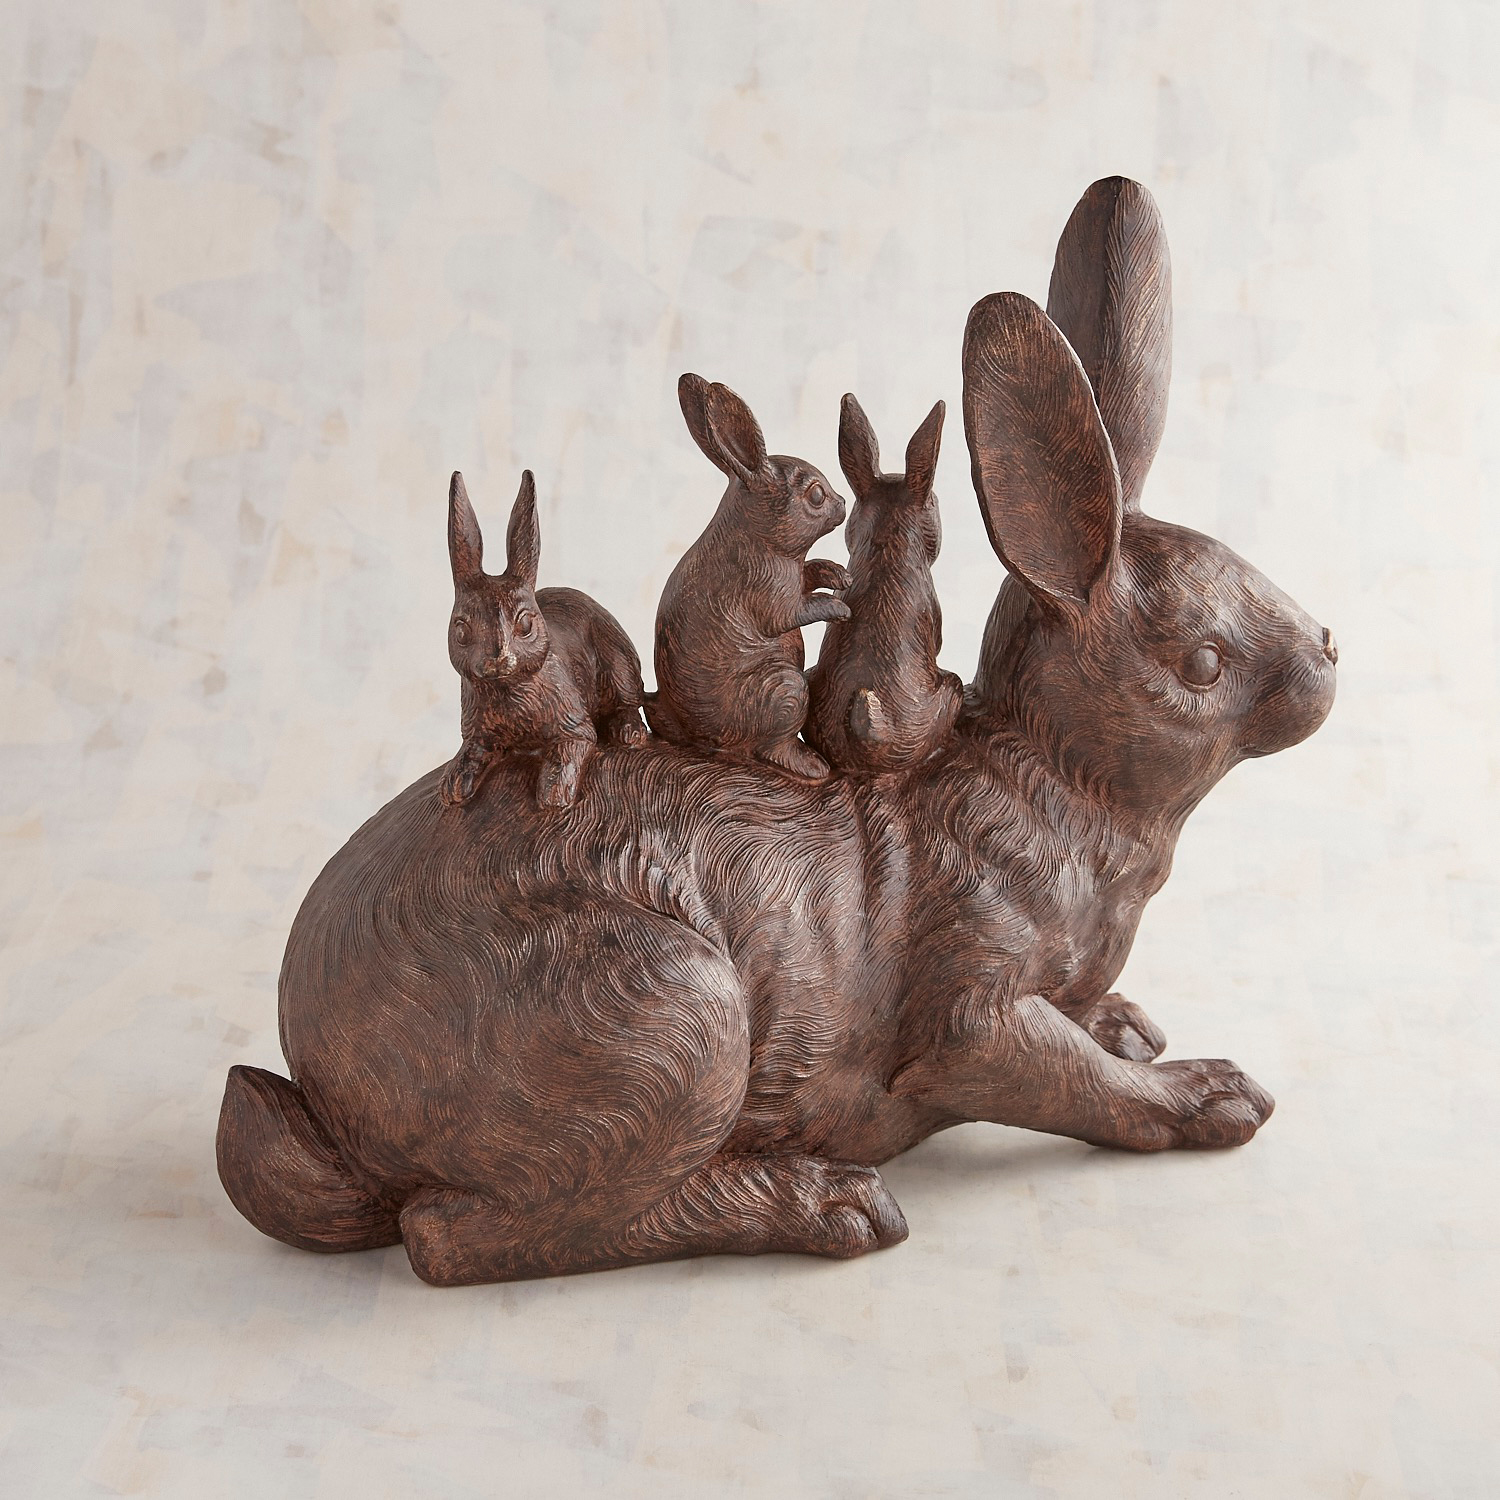 Mama Rabbit & Babies Outdoor Decor